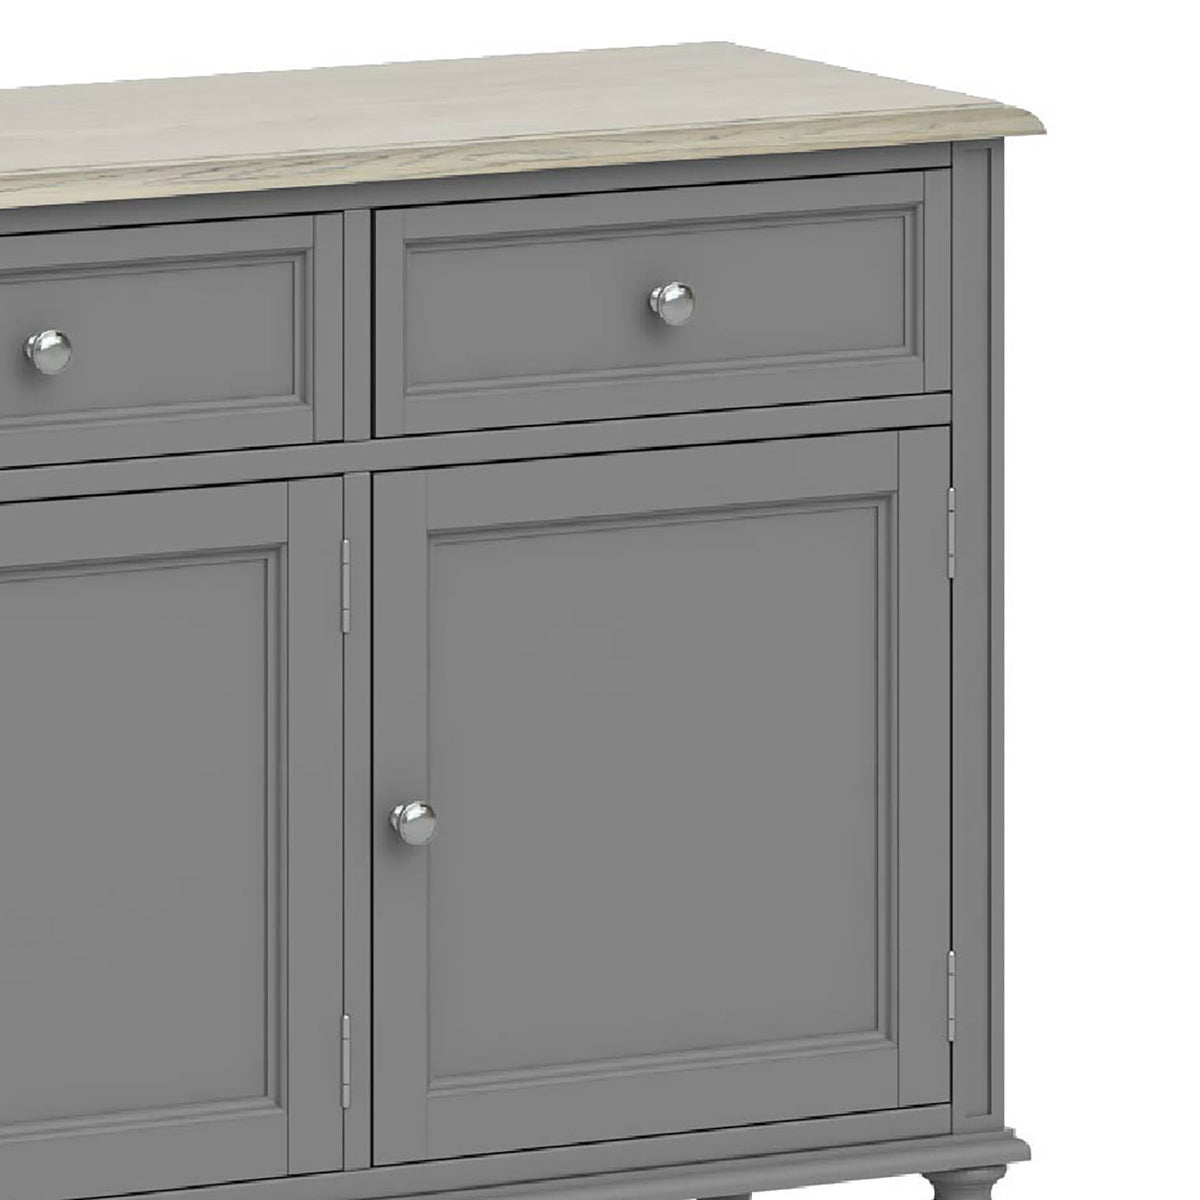 Mulsanne Grey Large Sideboard - Close Up of Right Hand Drawer and Cupboard